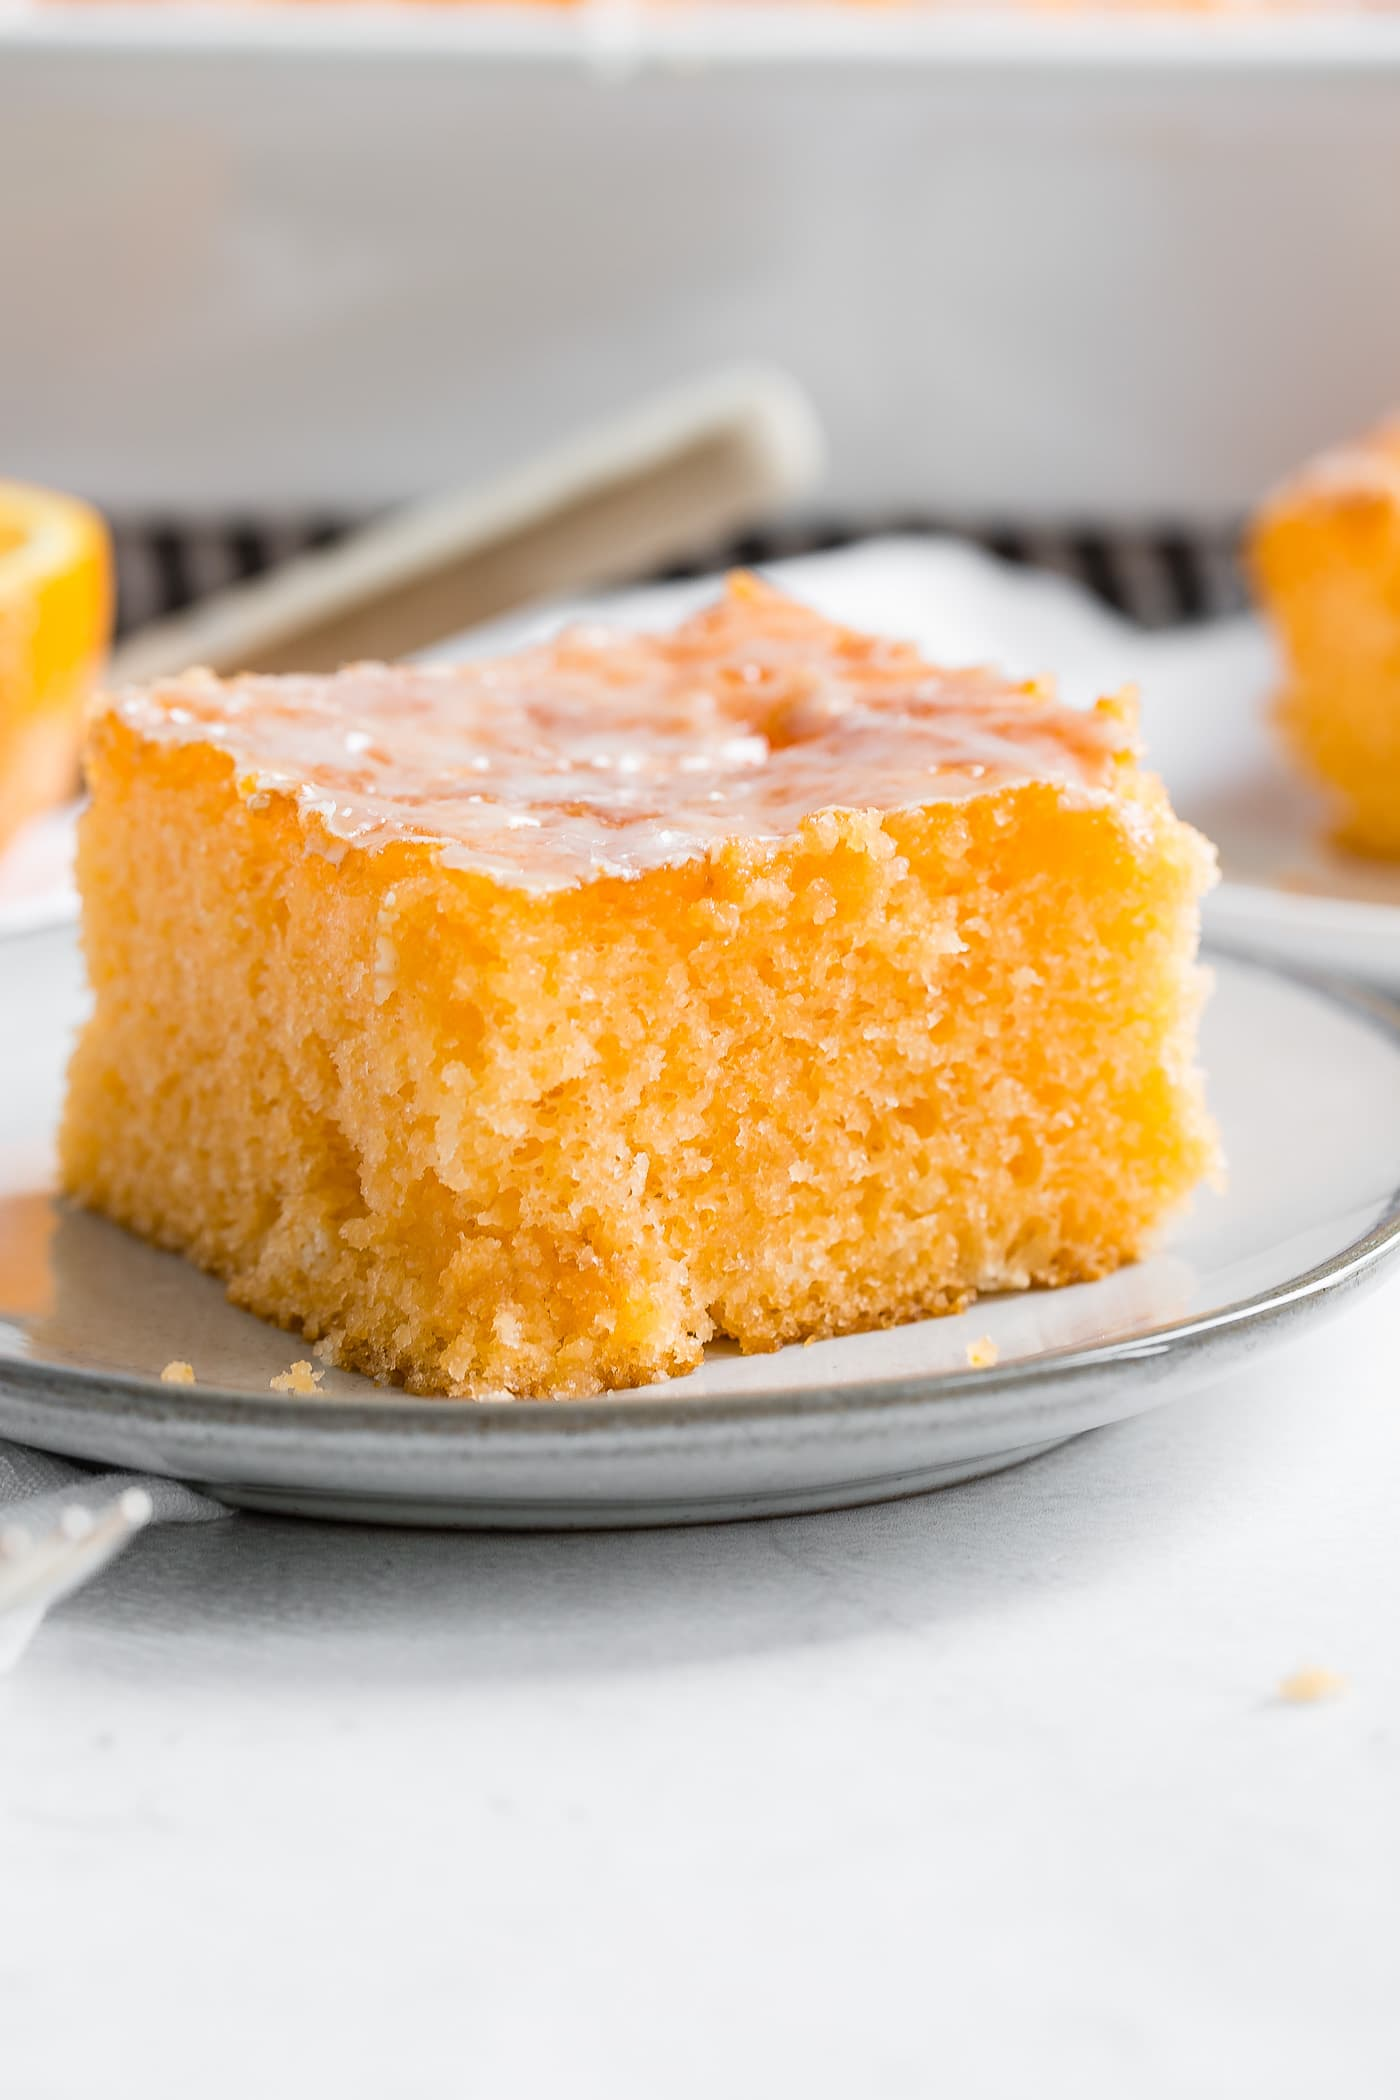 A photo of a piece of orange jello cake on a small white plate with orange glaze on the top.